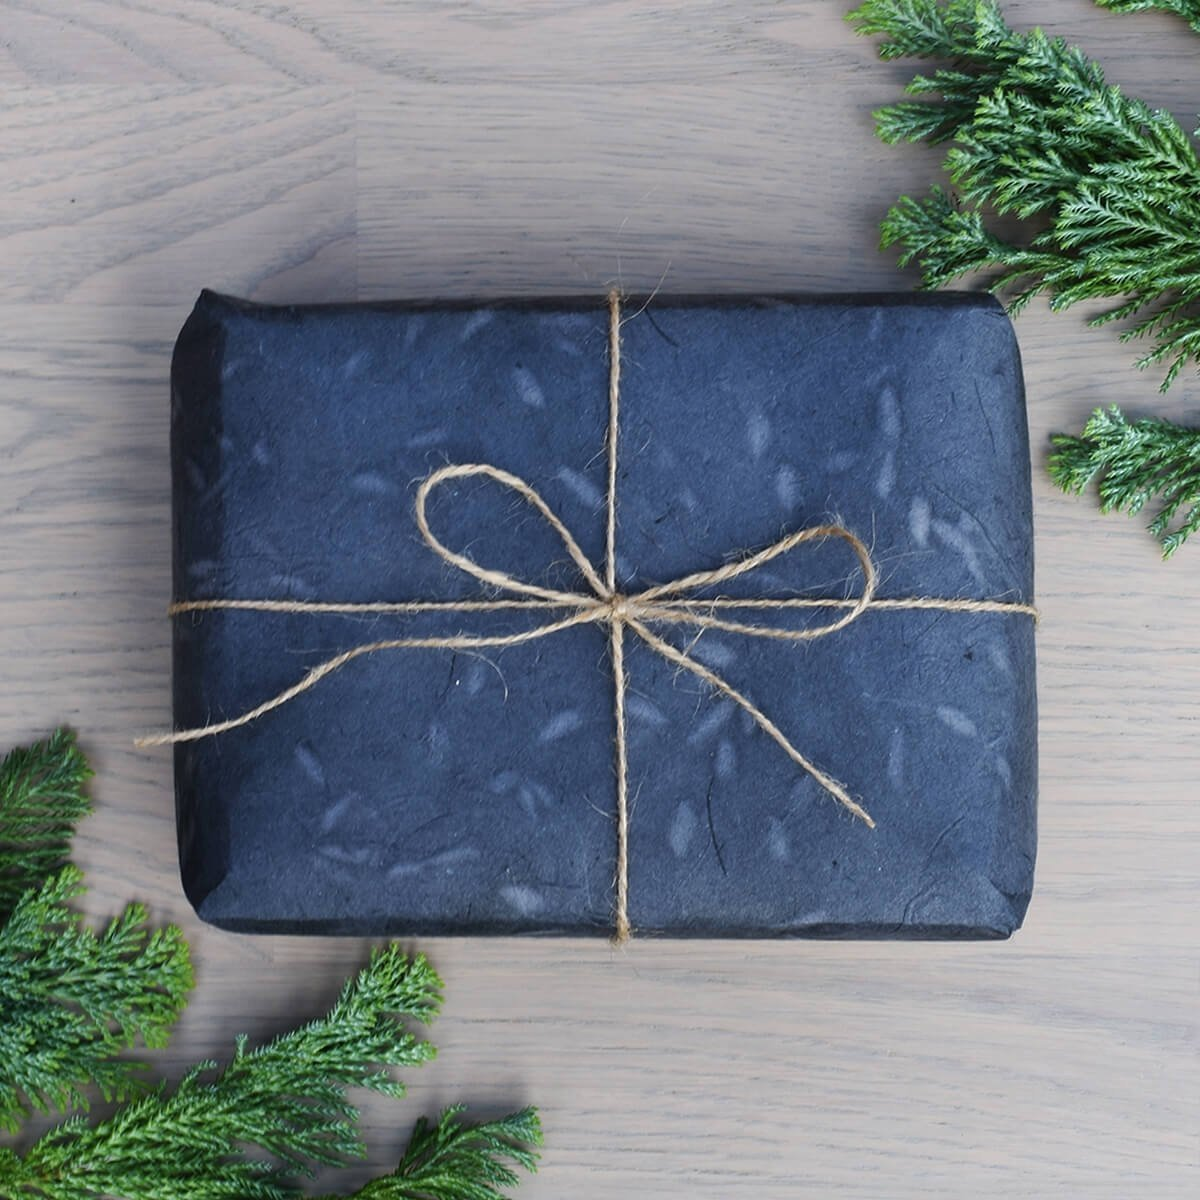 biodegradable wrapping paper lokta sirus indigo wrapped